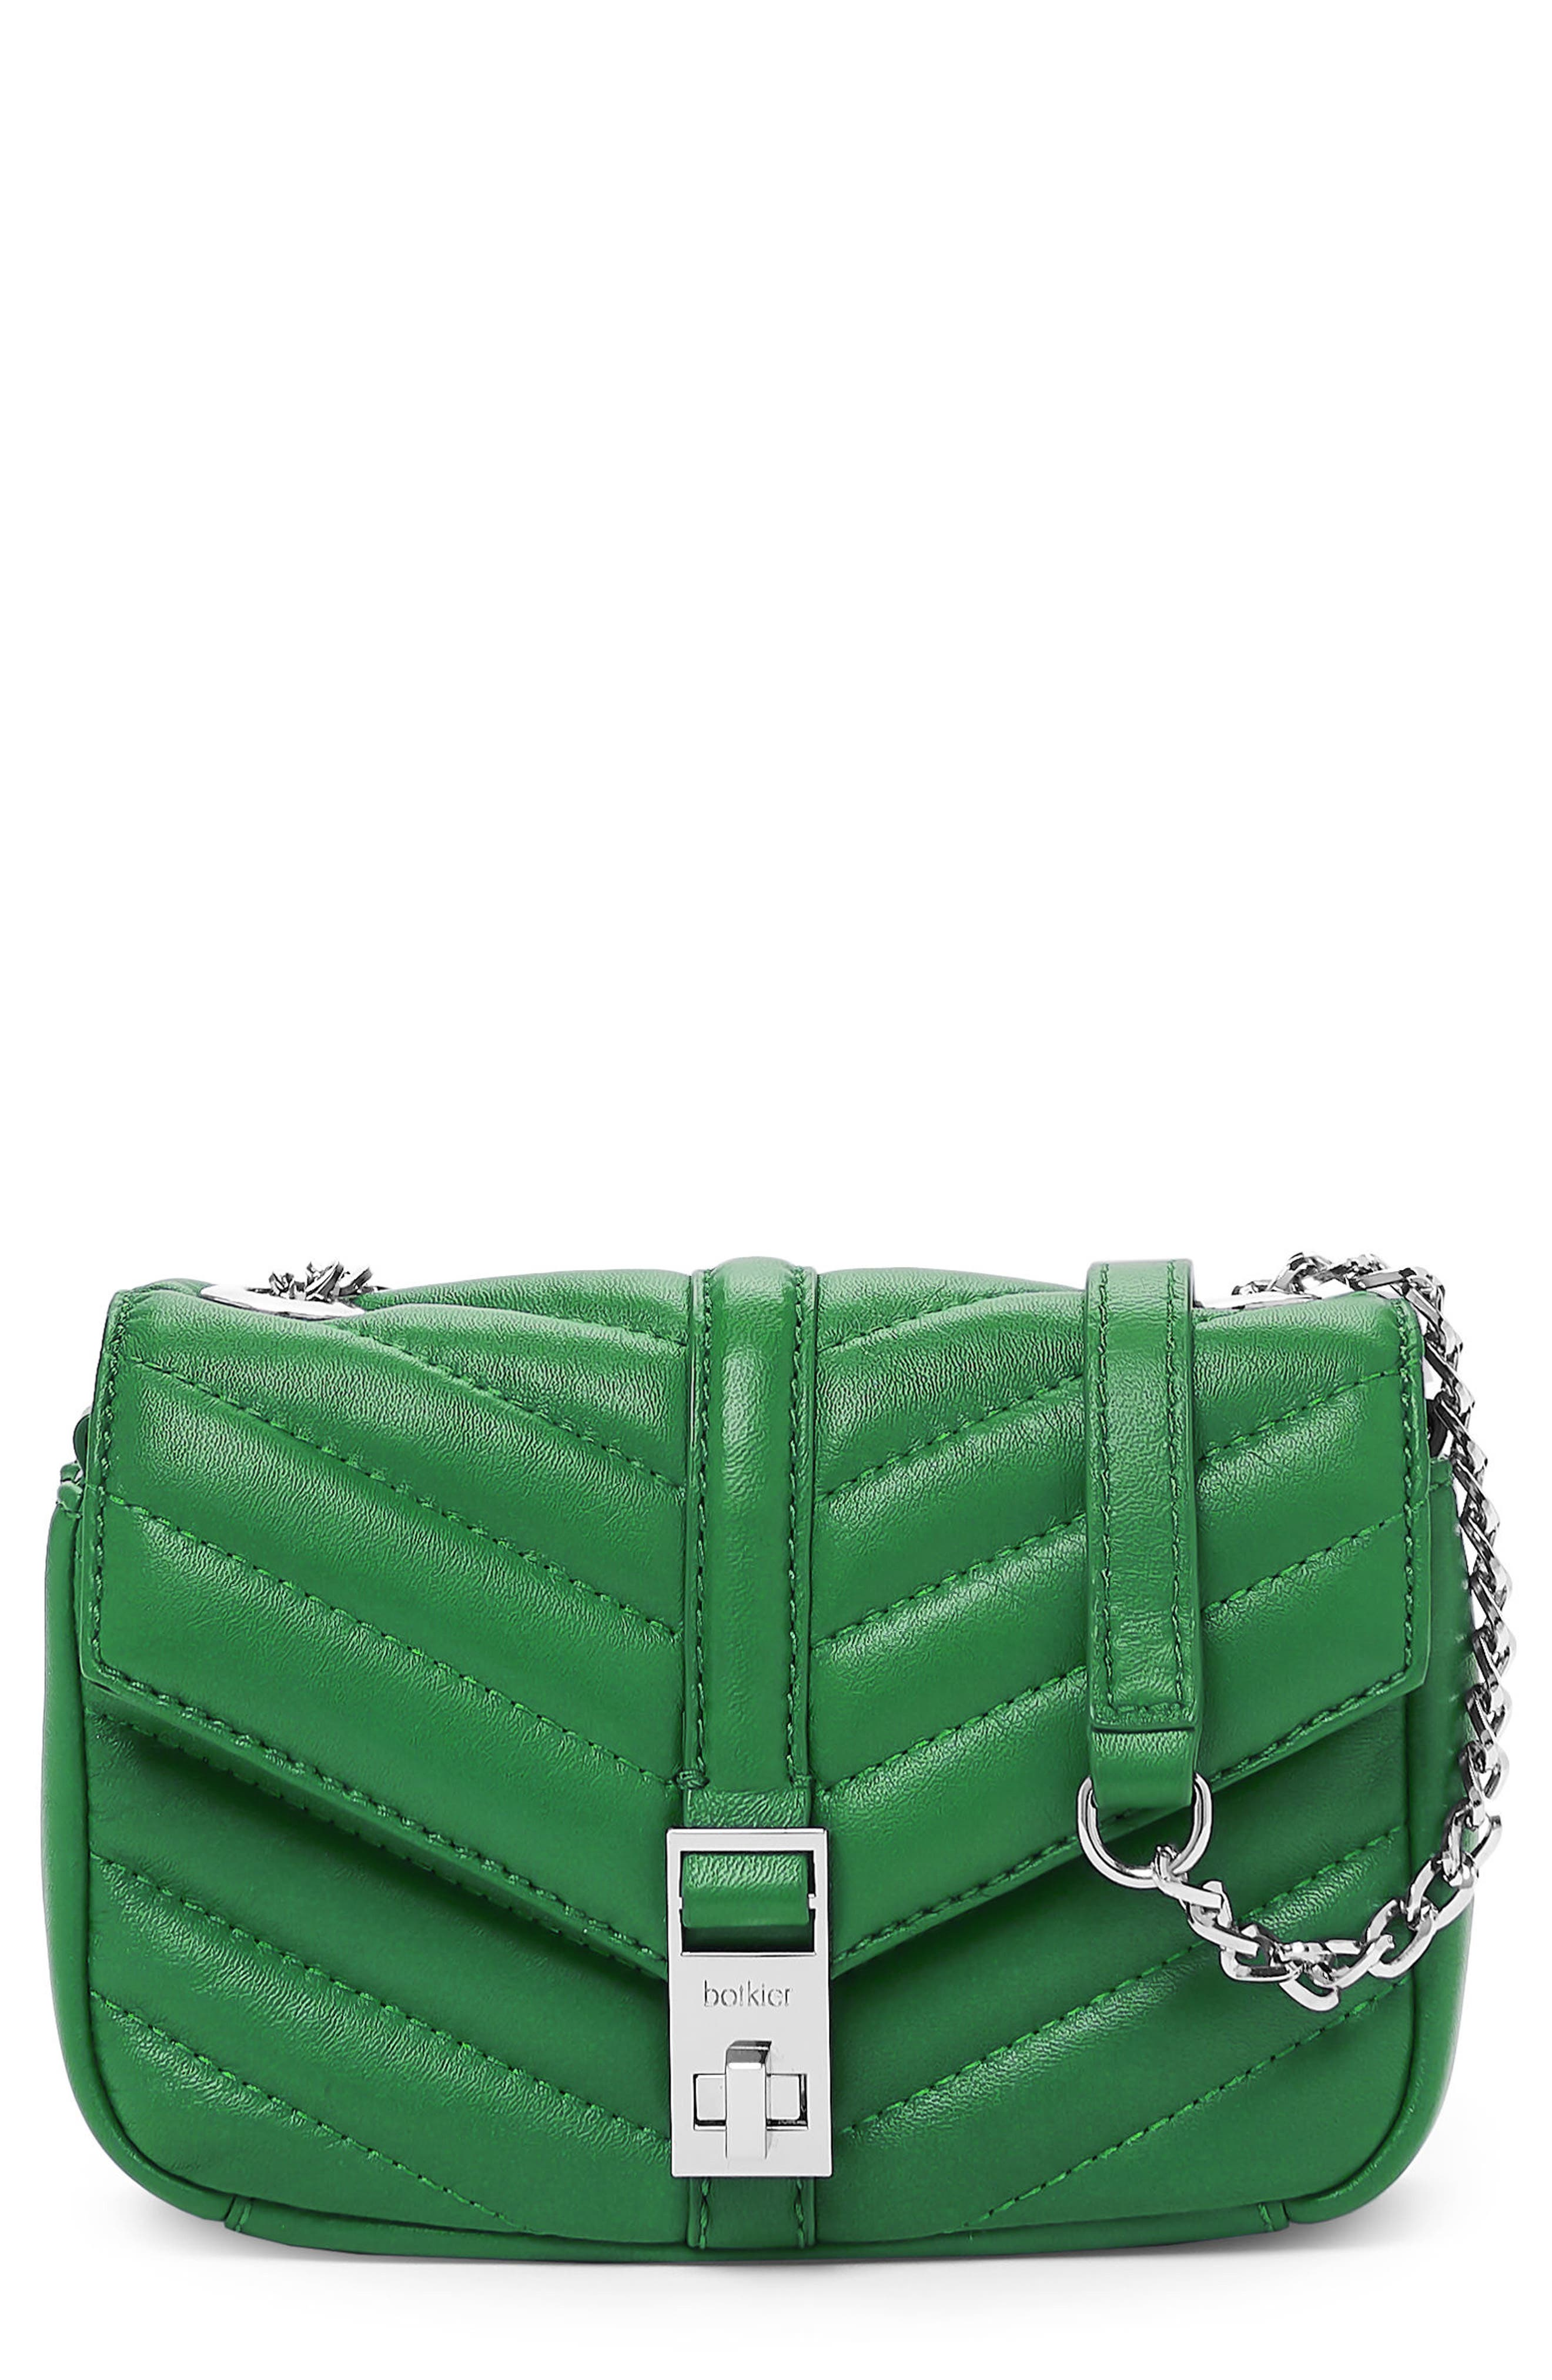 Dakota Quilted Leather Crossbody Bag,                             Main thumbnail 1, color,                             GREEN